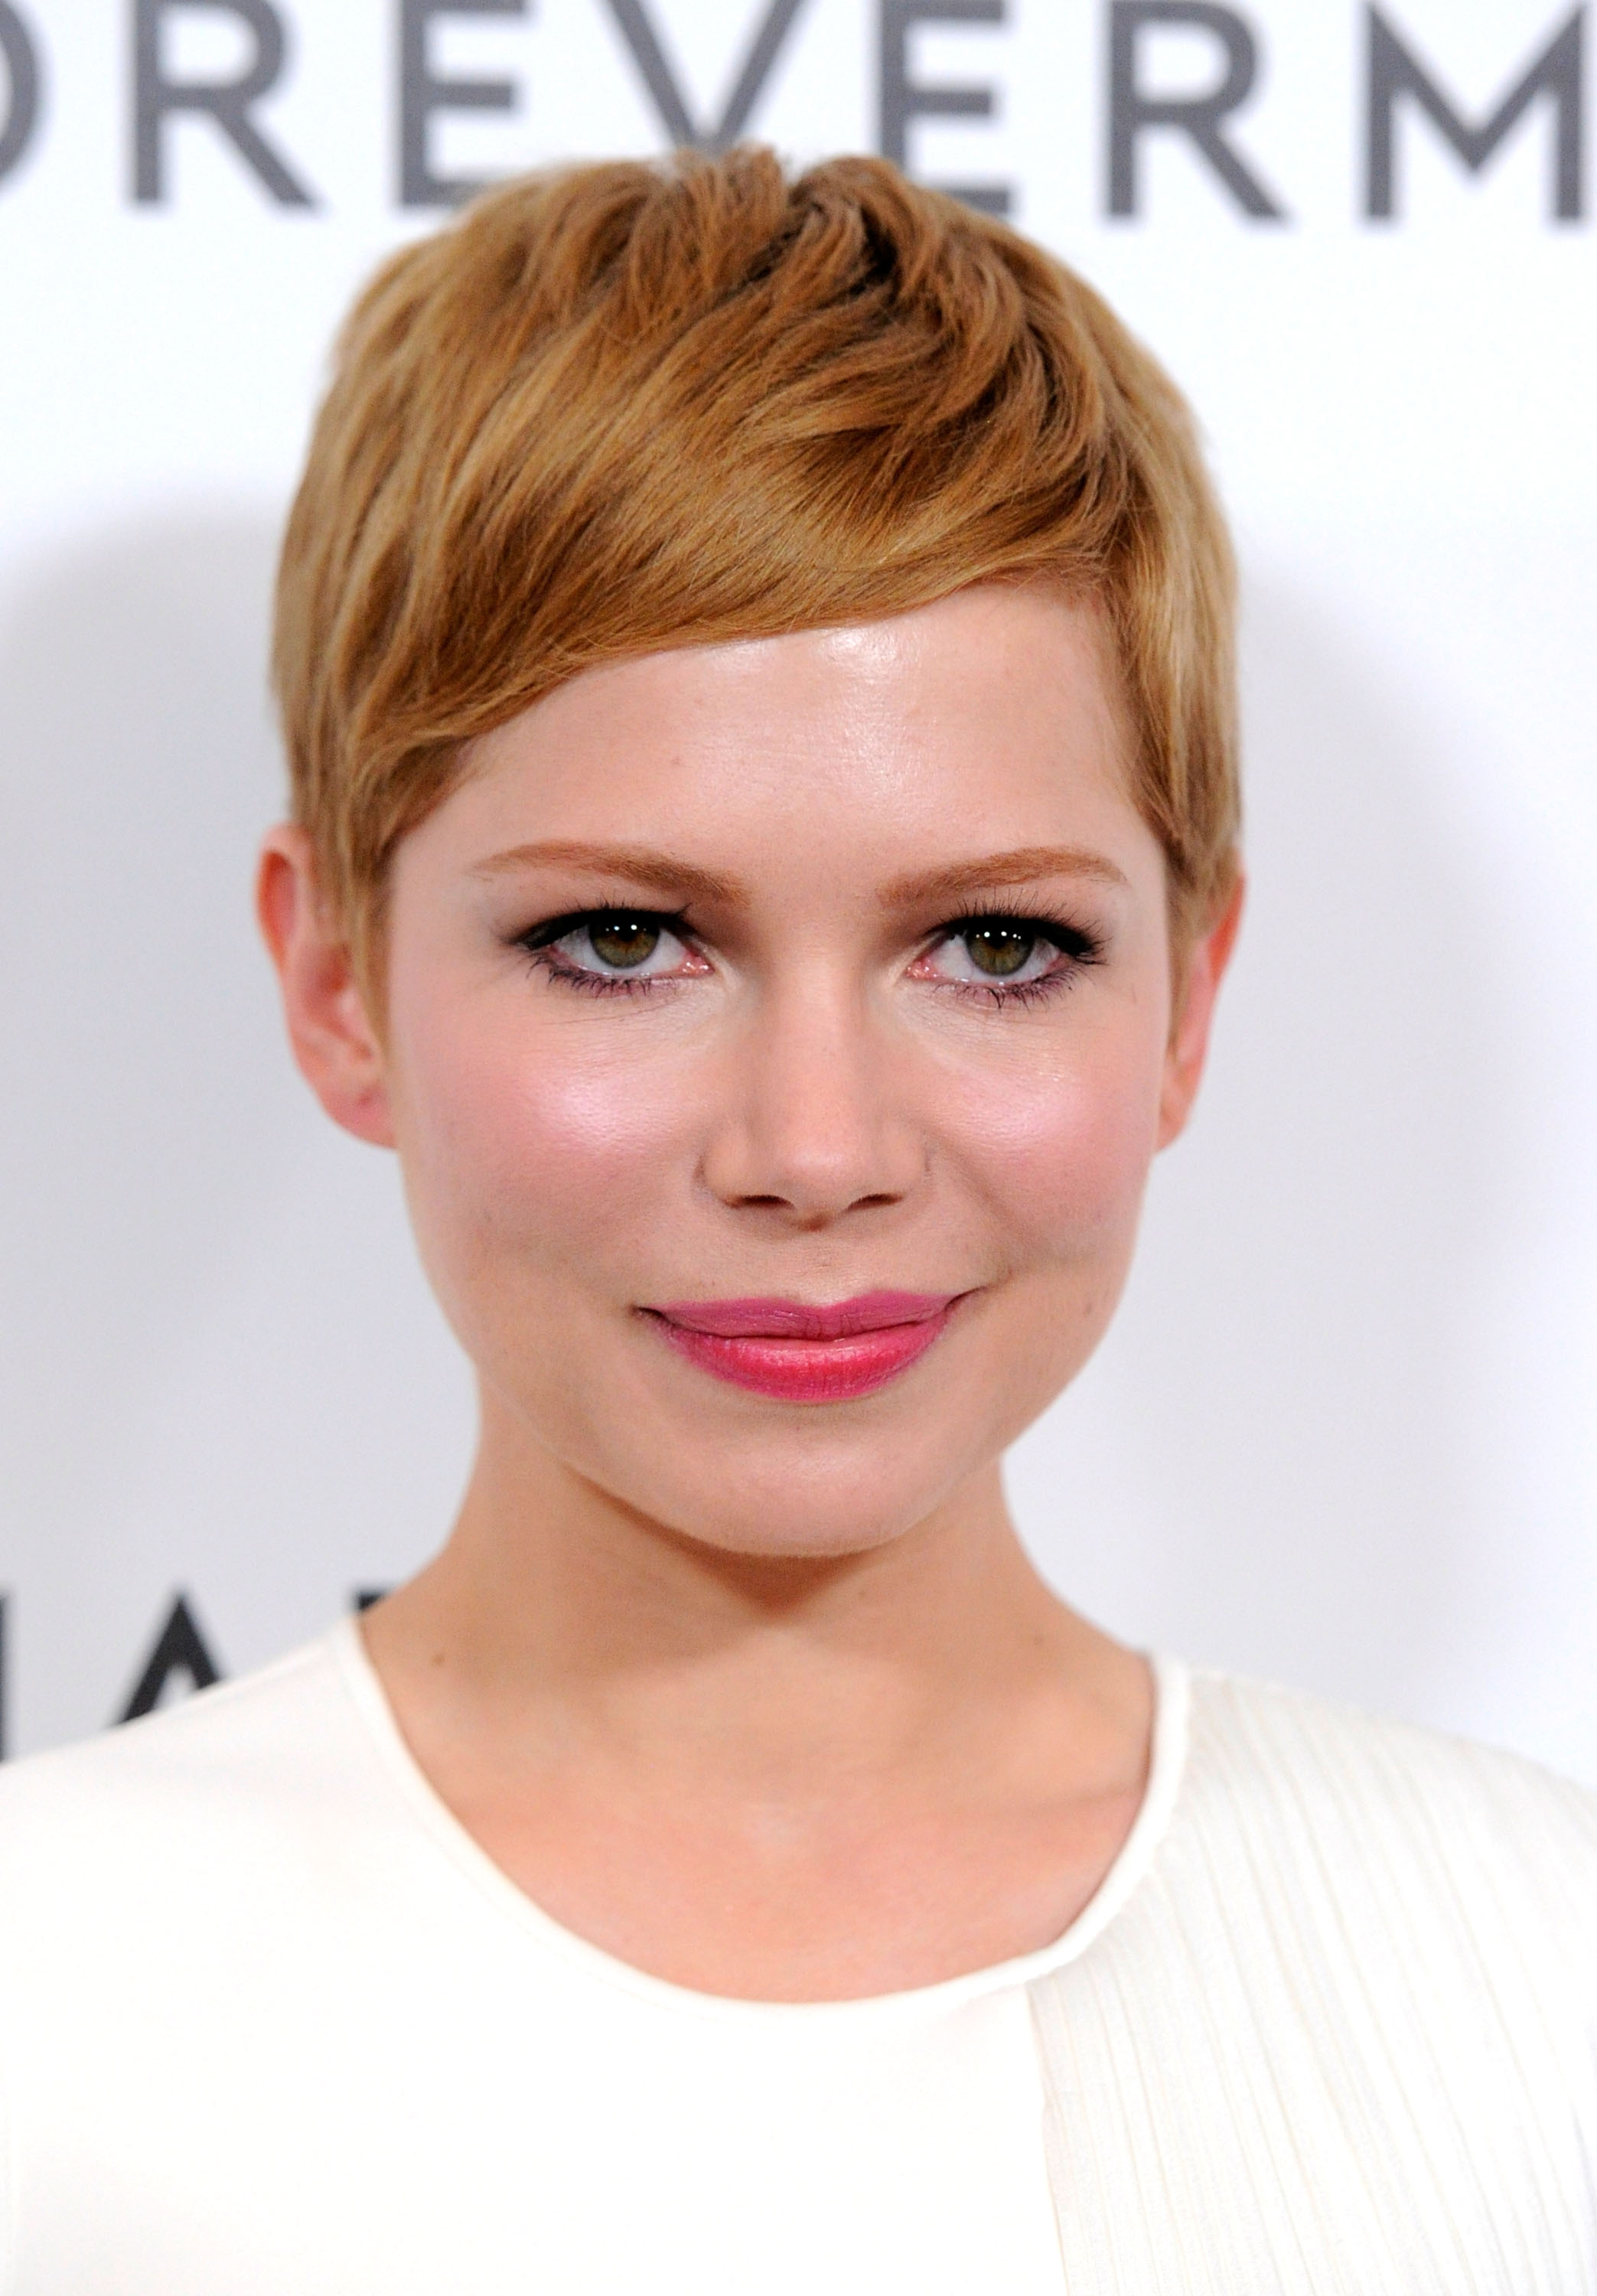 Incredible 34 Pixie Hairstyles And Cuts Celebrities With Pixies Short Hairstyles For Black Women Fulllsitofus